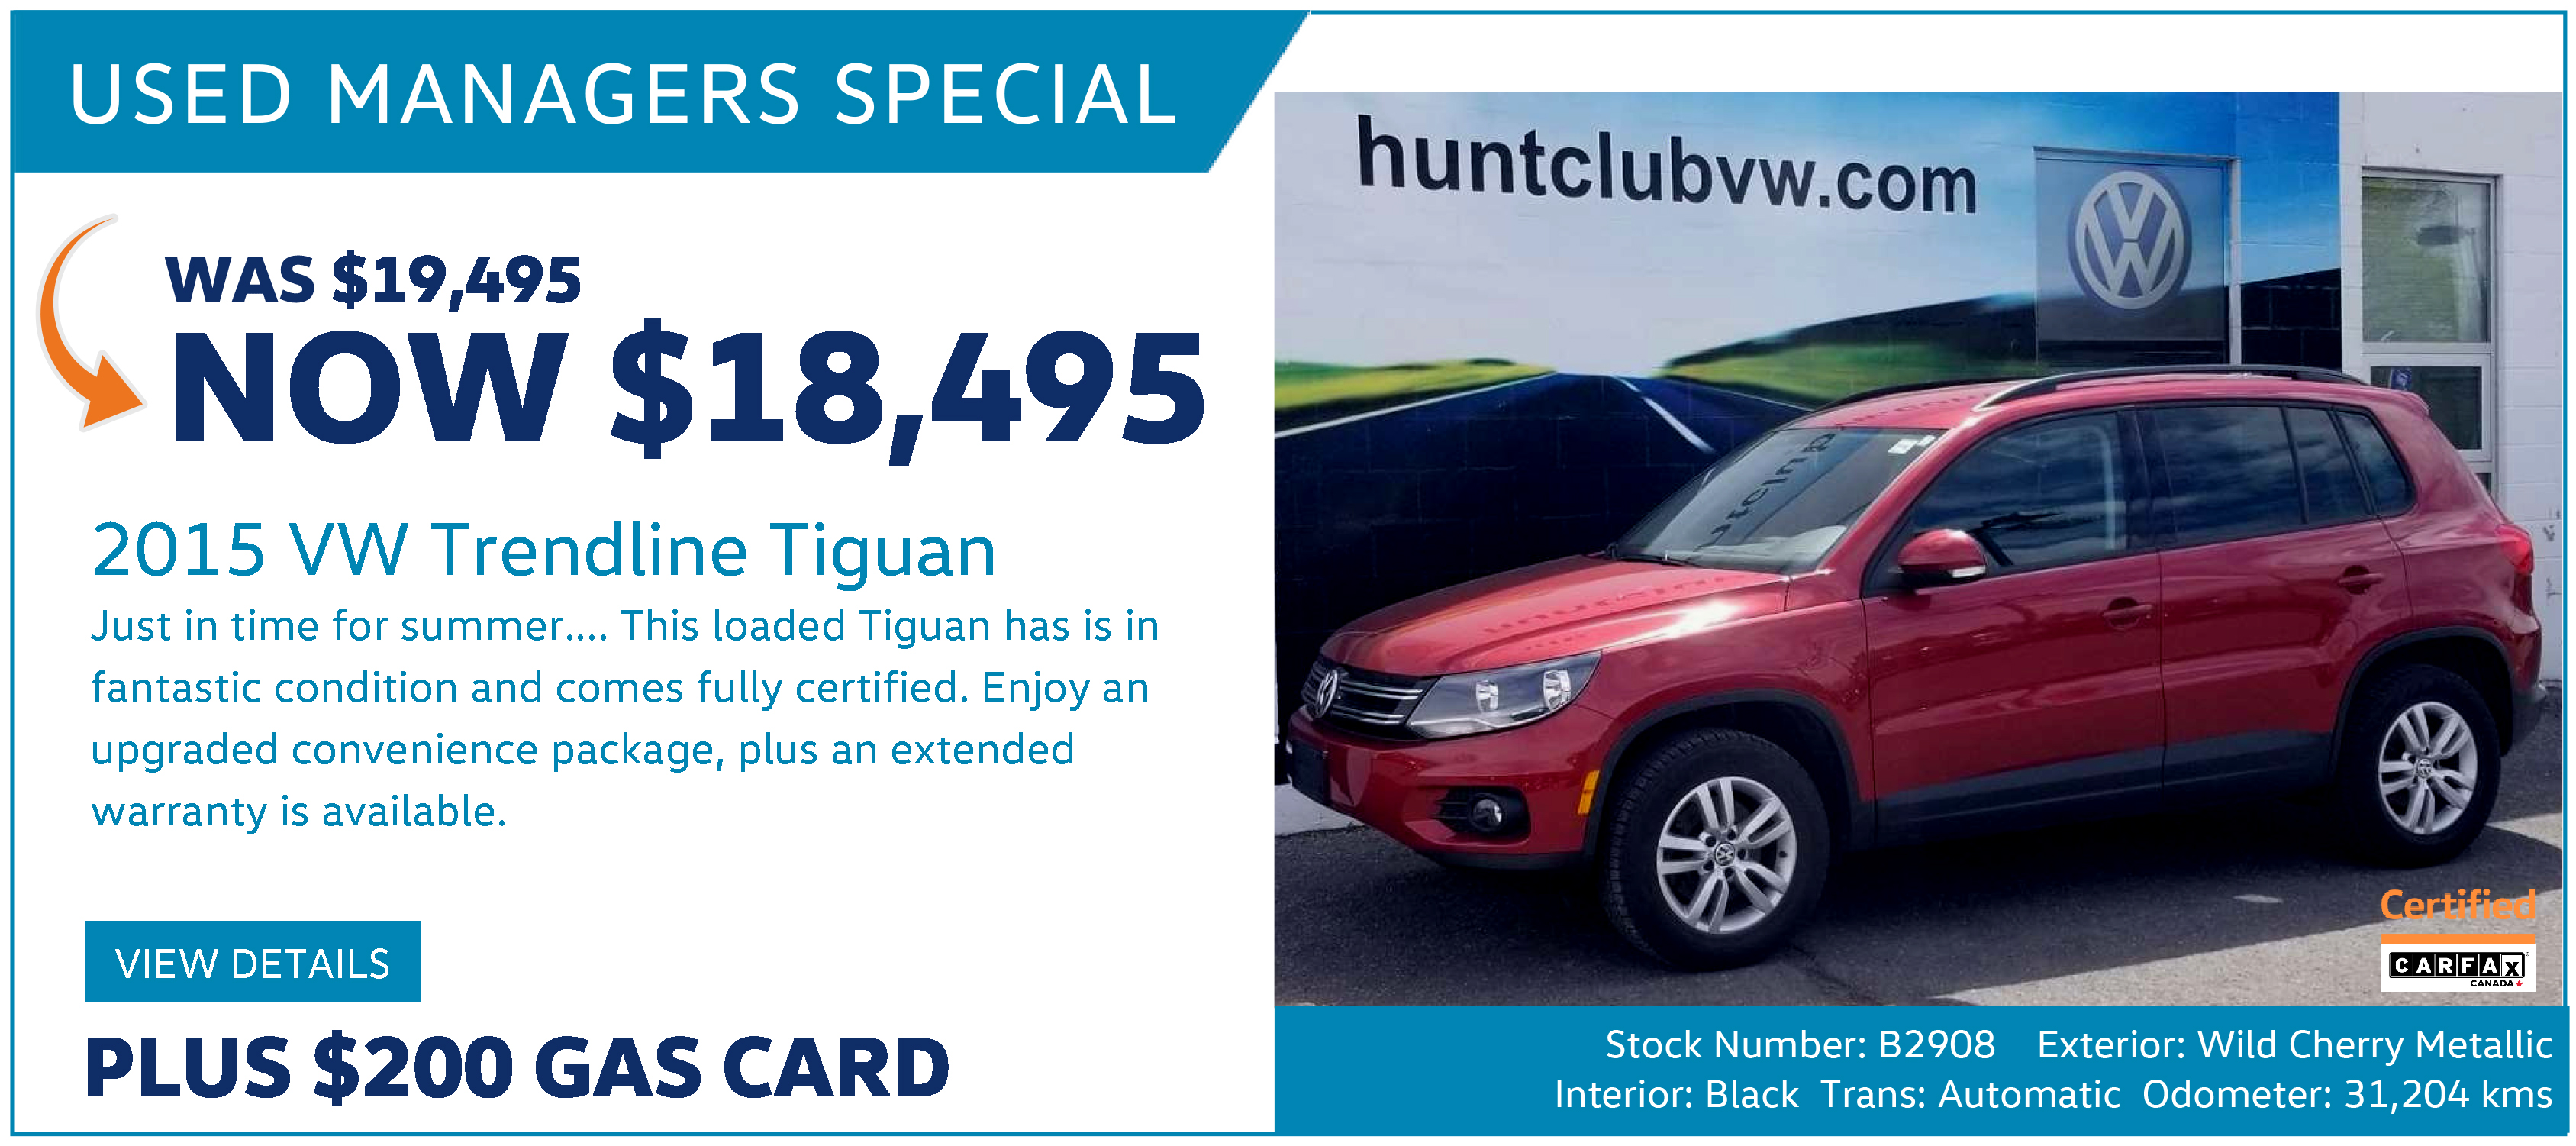 Managers Special Web - Hunt Club Volkswagen